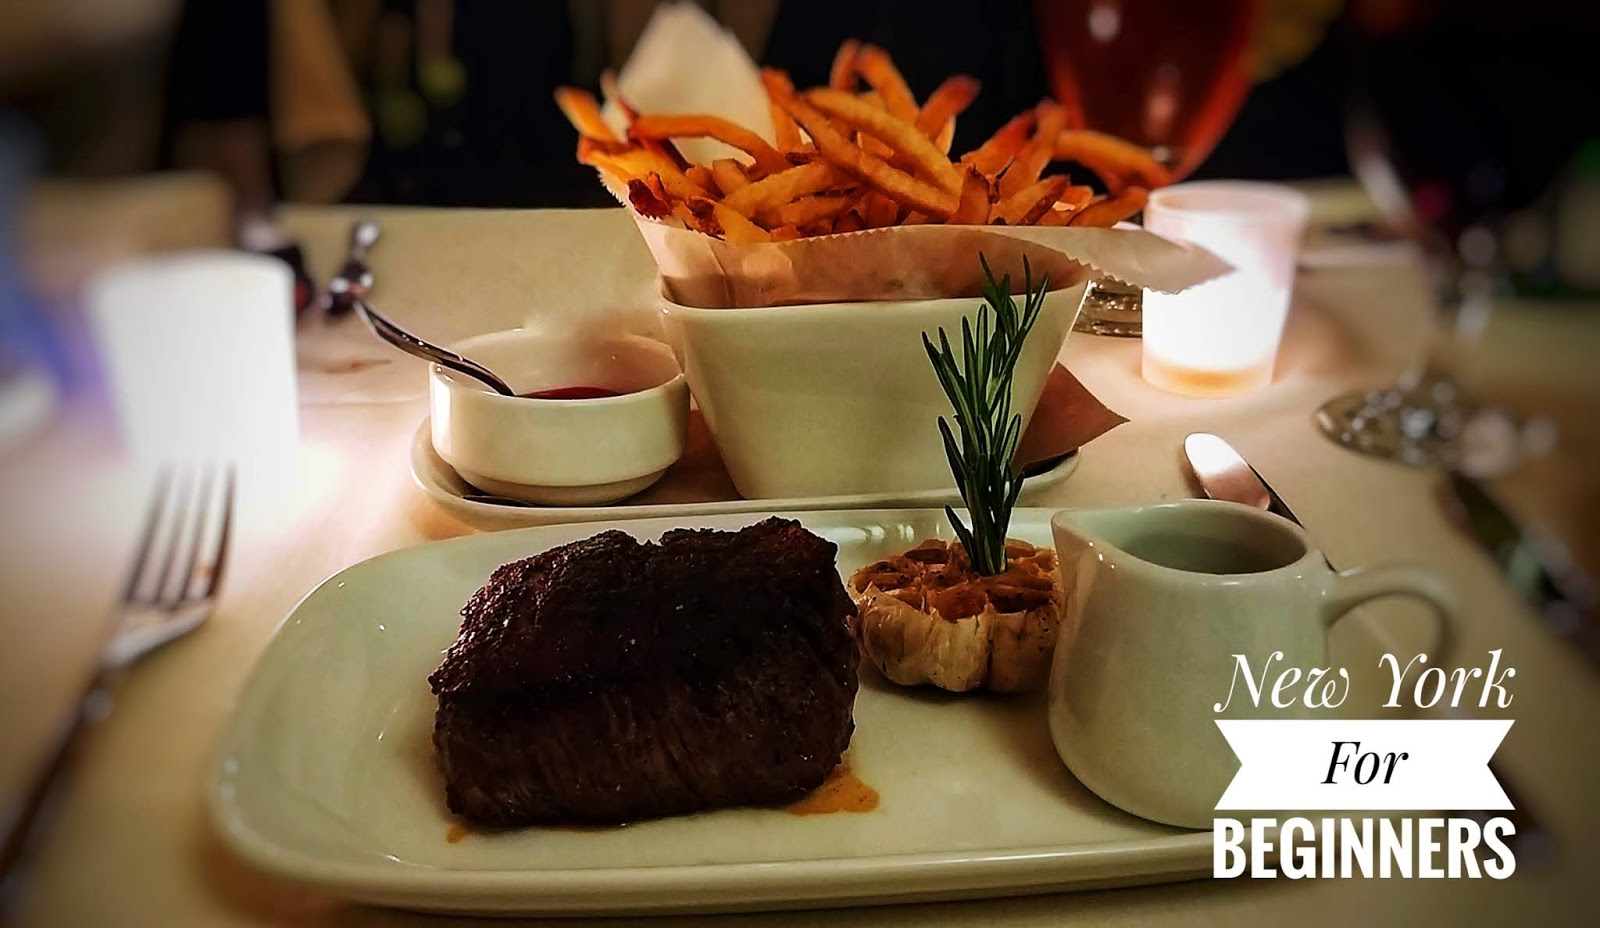 Image of a black angus filet mignon with a jar of sauce and french fries